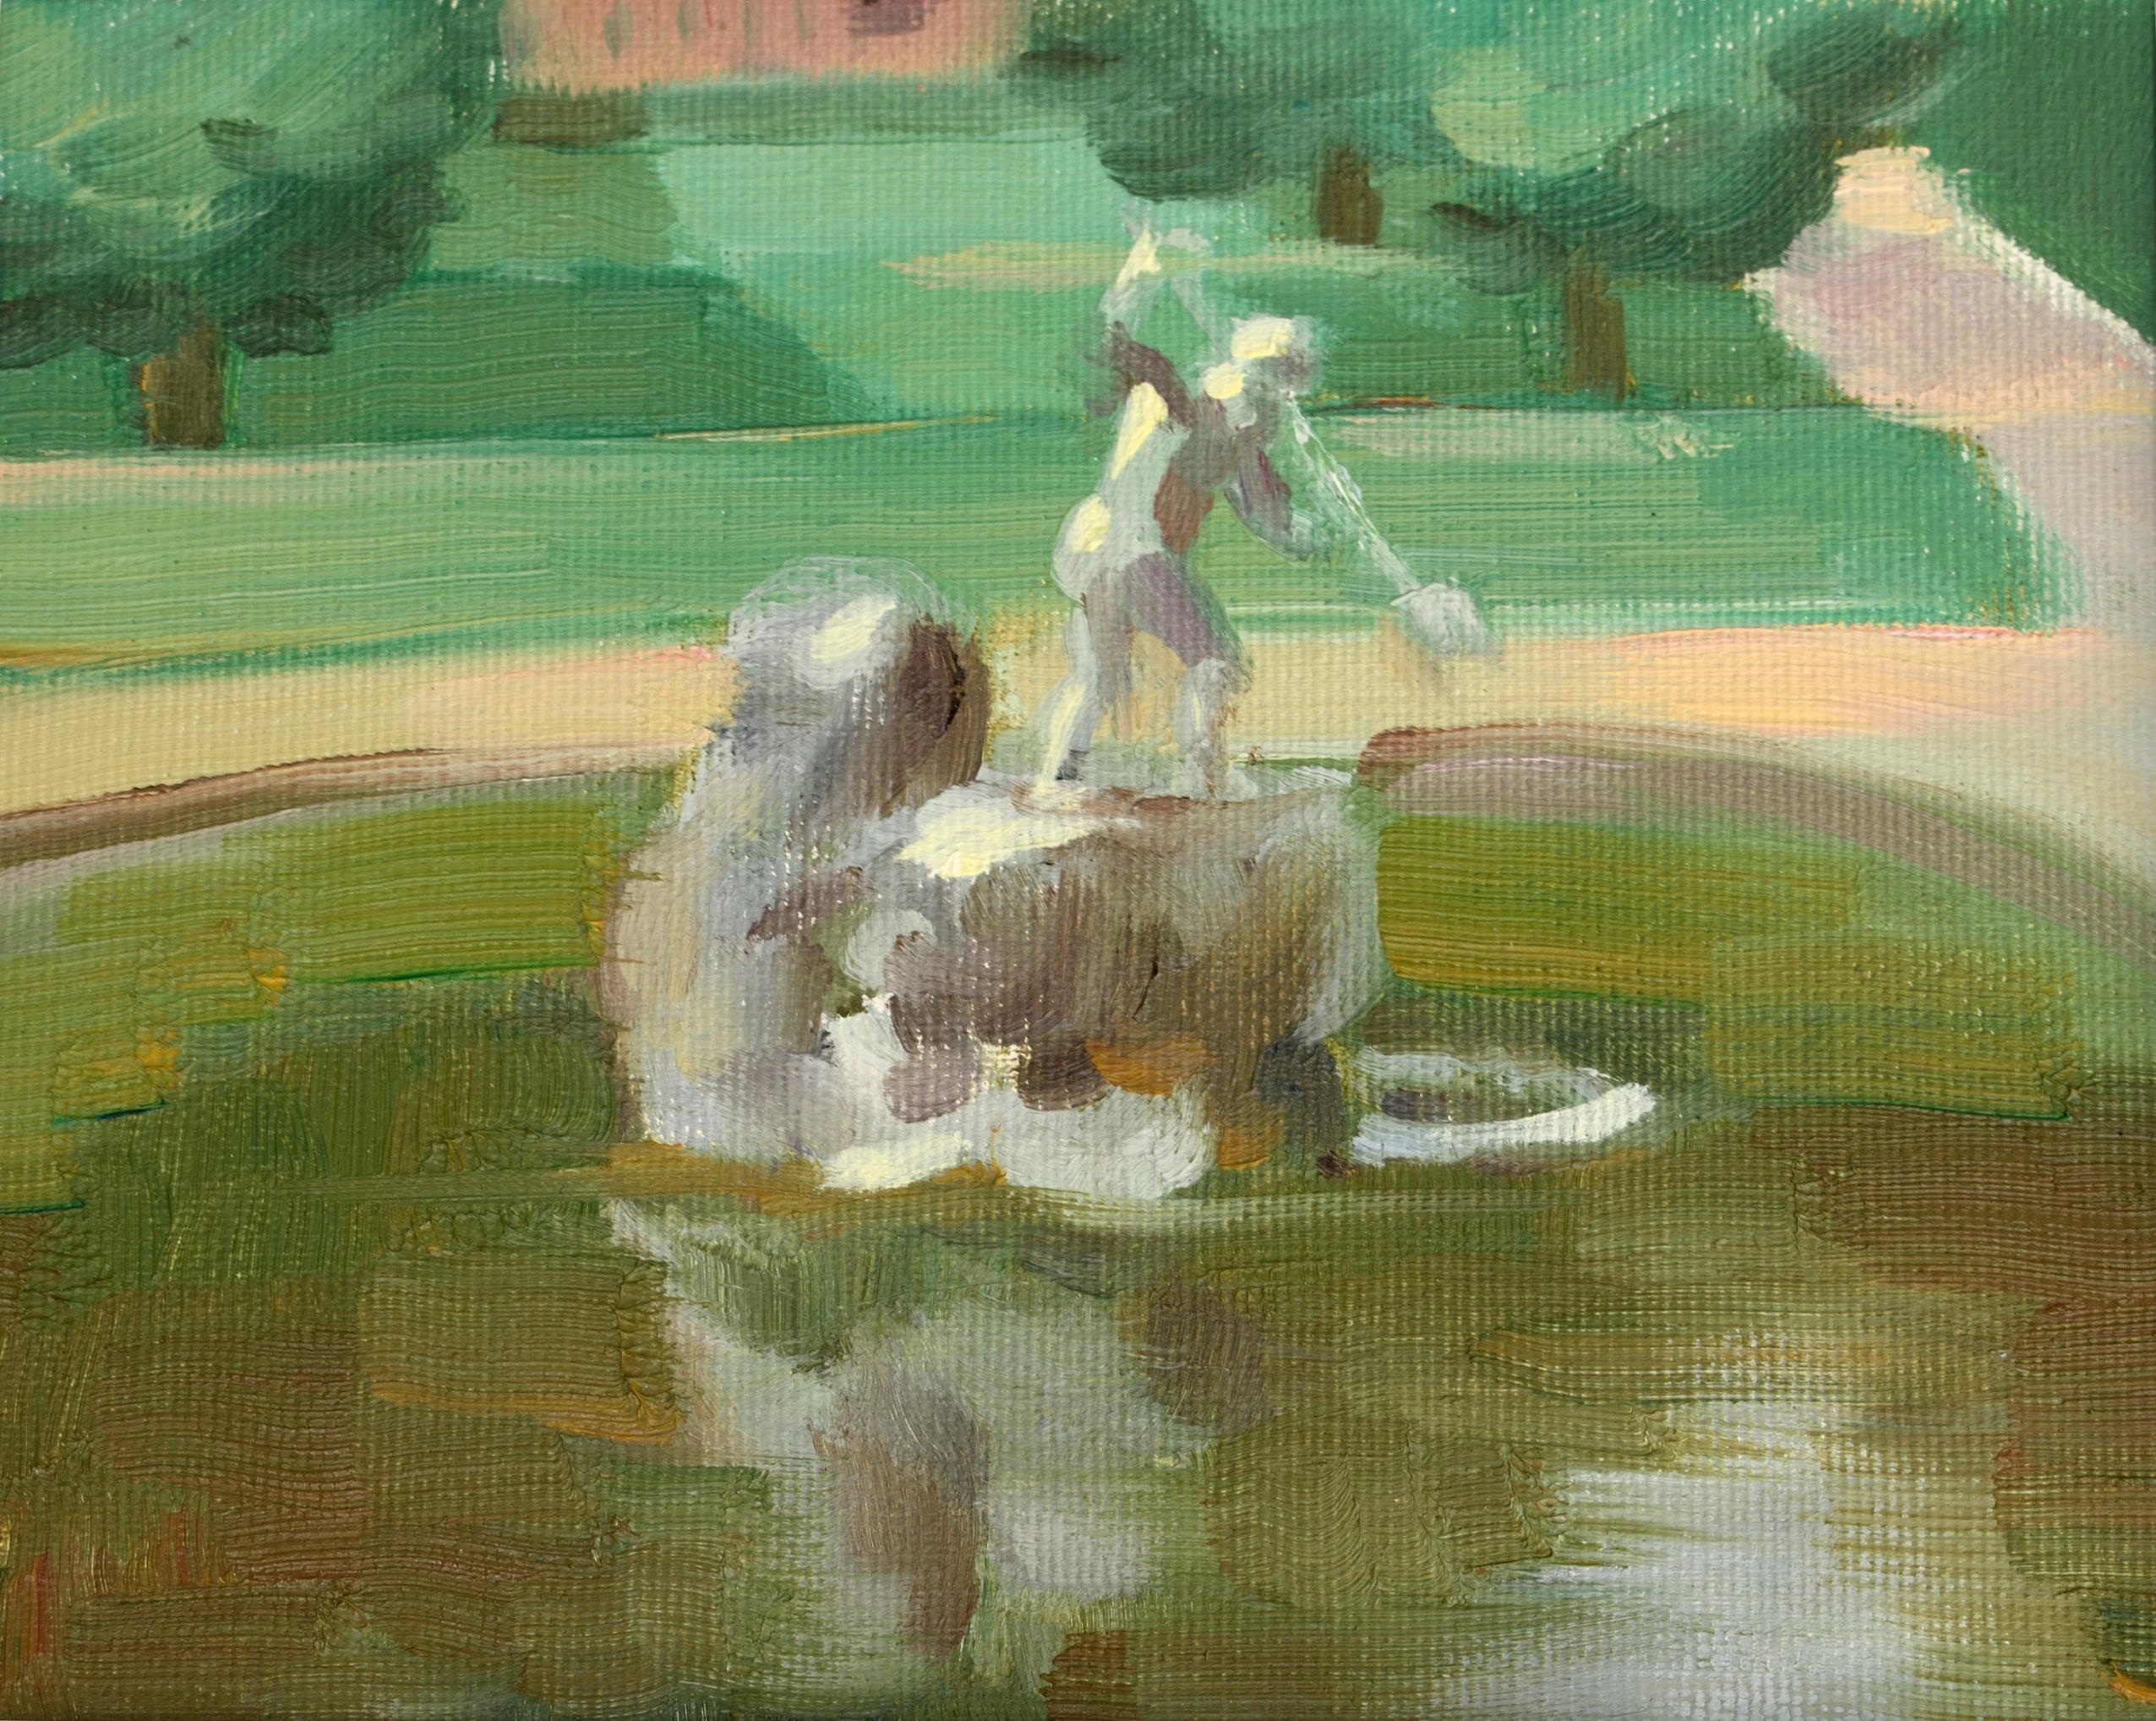 Fontana del Nettuno, oil on canvas, 15 x 20 cm, 2018